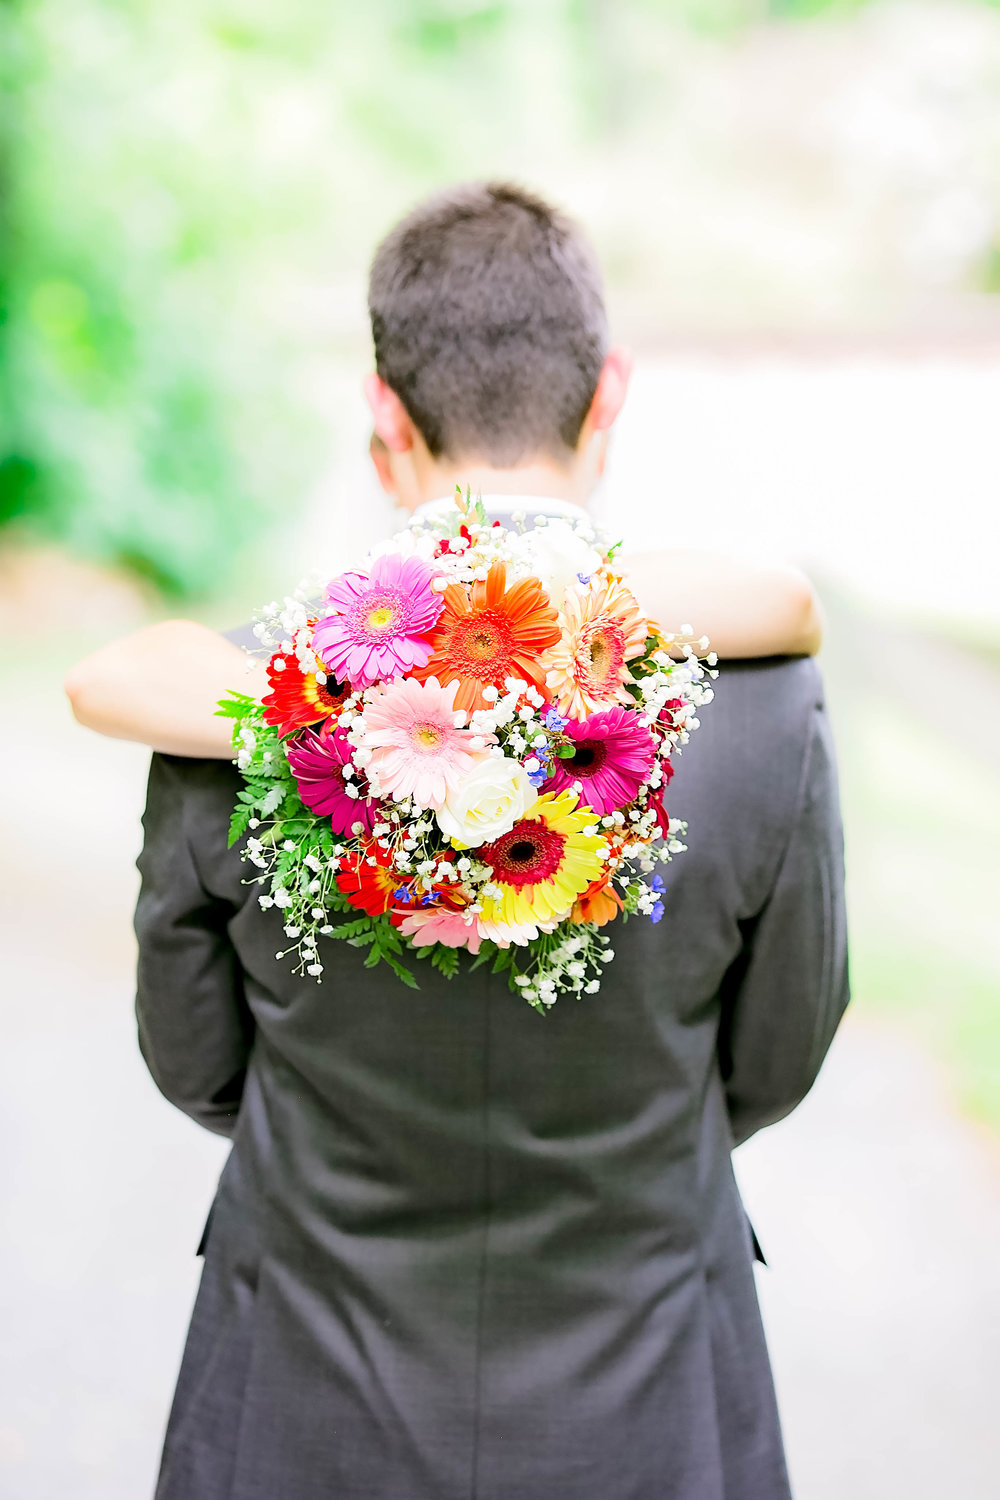 Hot Springs, NC wedding, East Tennessee Wedding photography, bride and groom, bridal bouquet